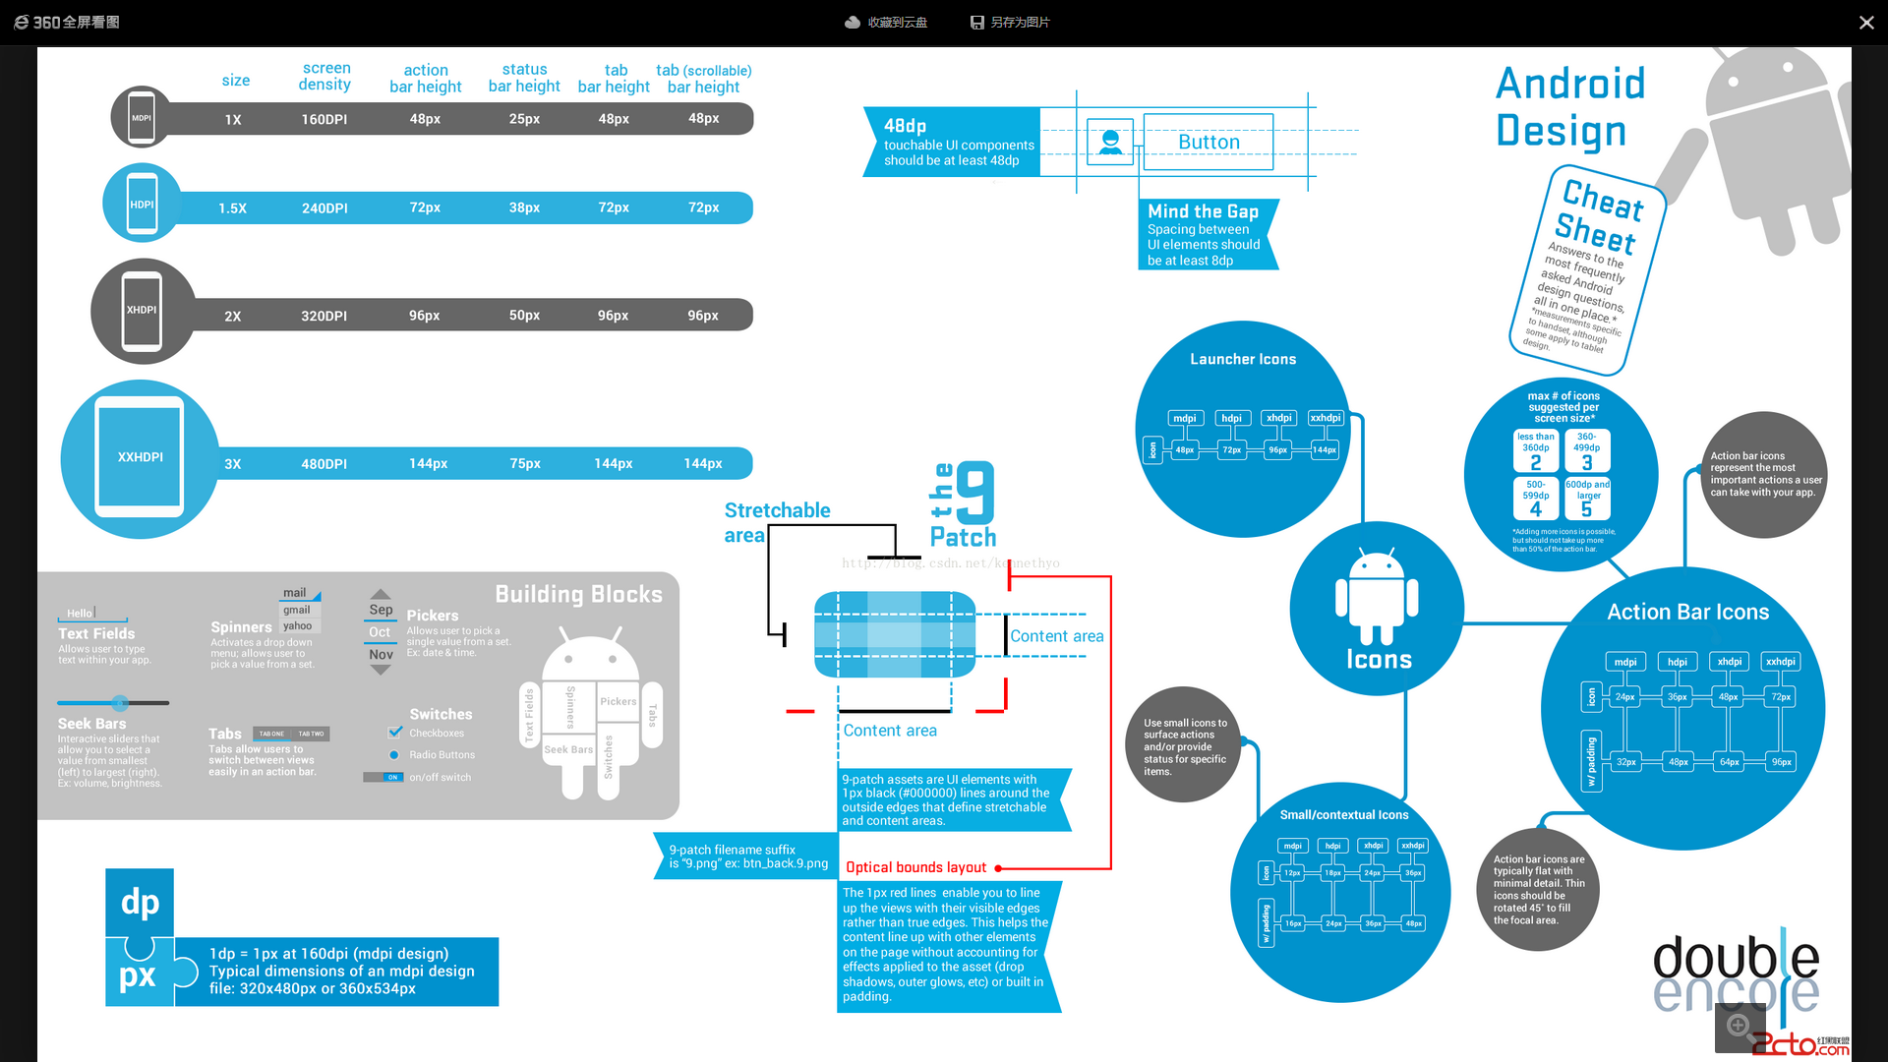 Pin by vention on Learn Android design, Cheat sheets